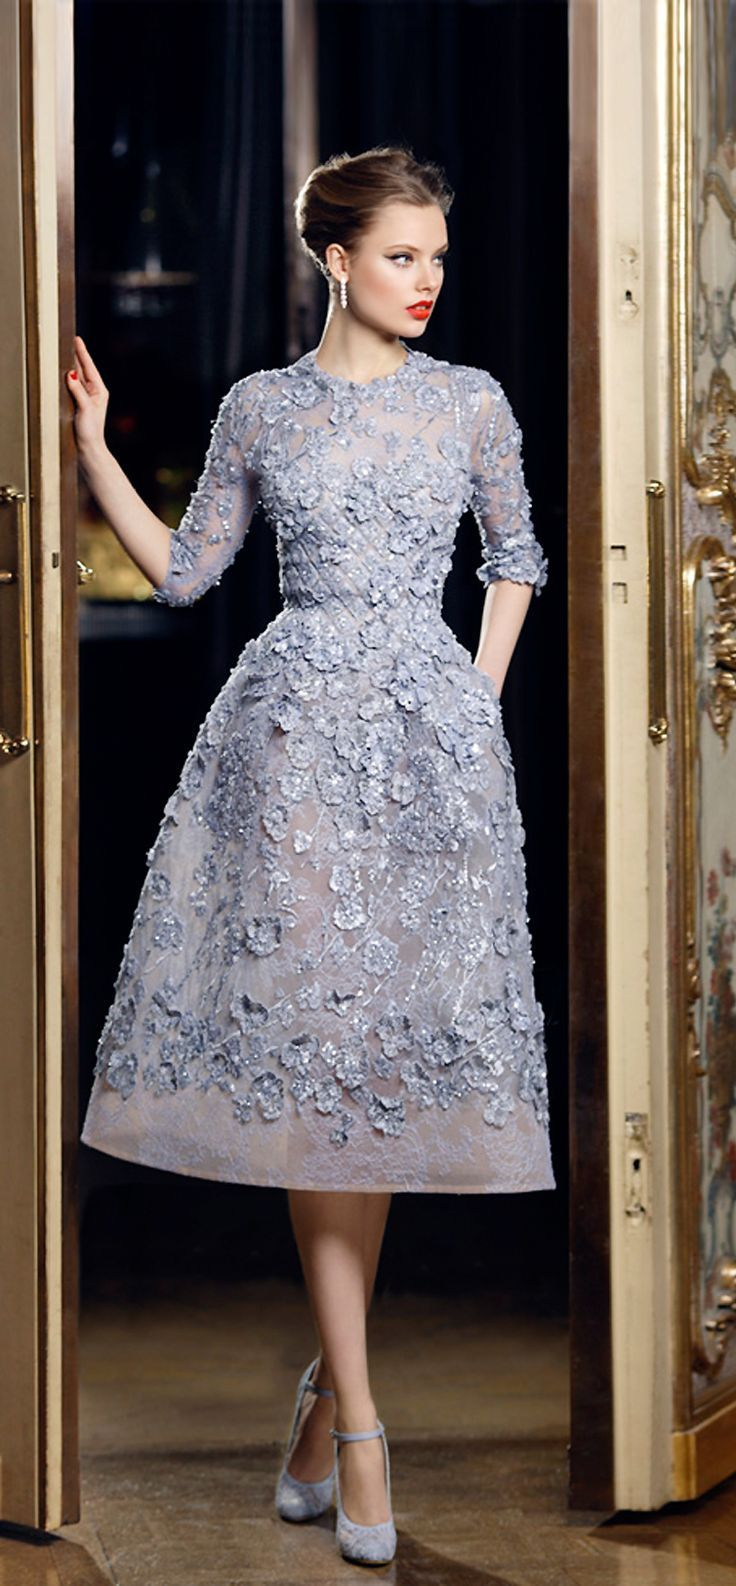 6018 best images about Classy Lady = Classically Elegant Woman on Pinterest | Ralph lauren ...